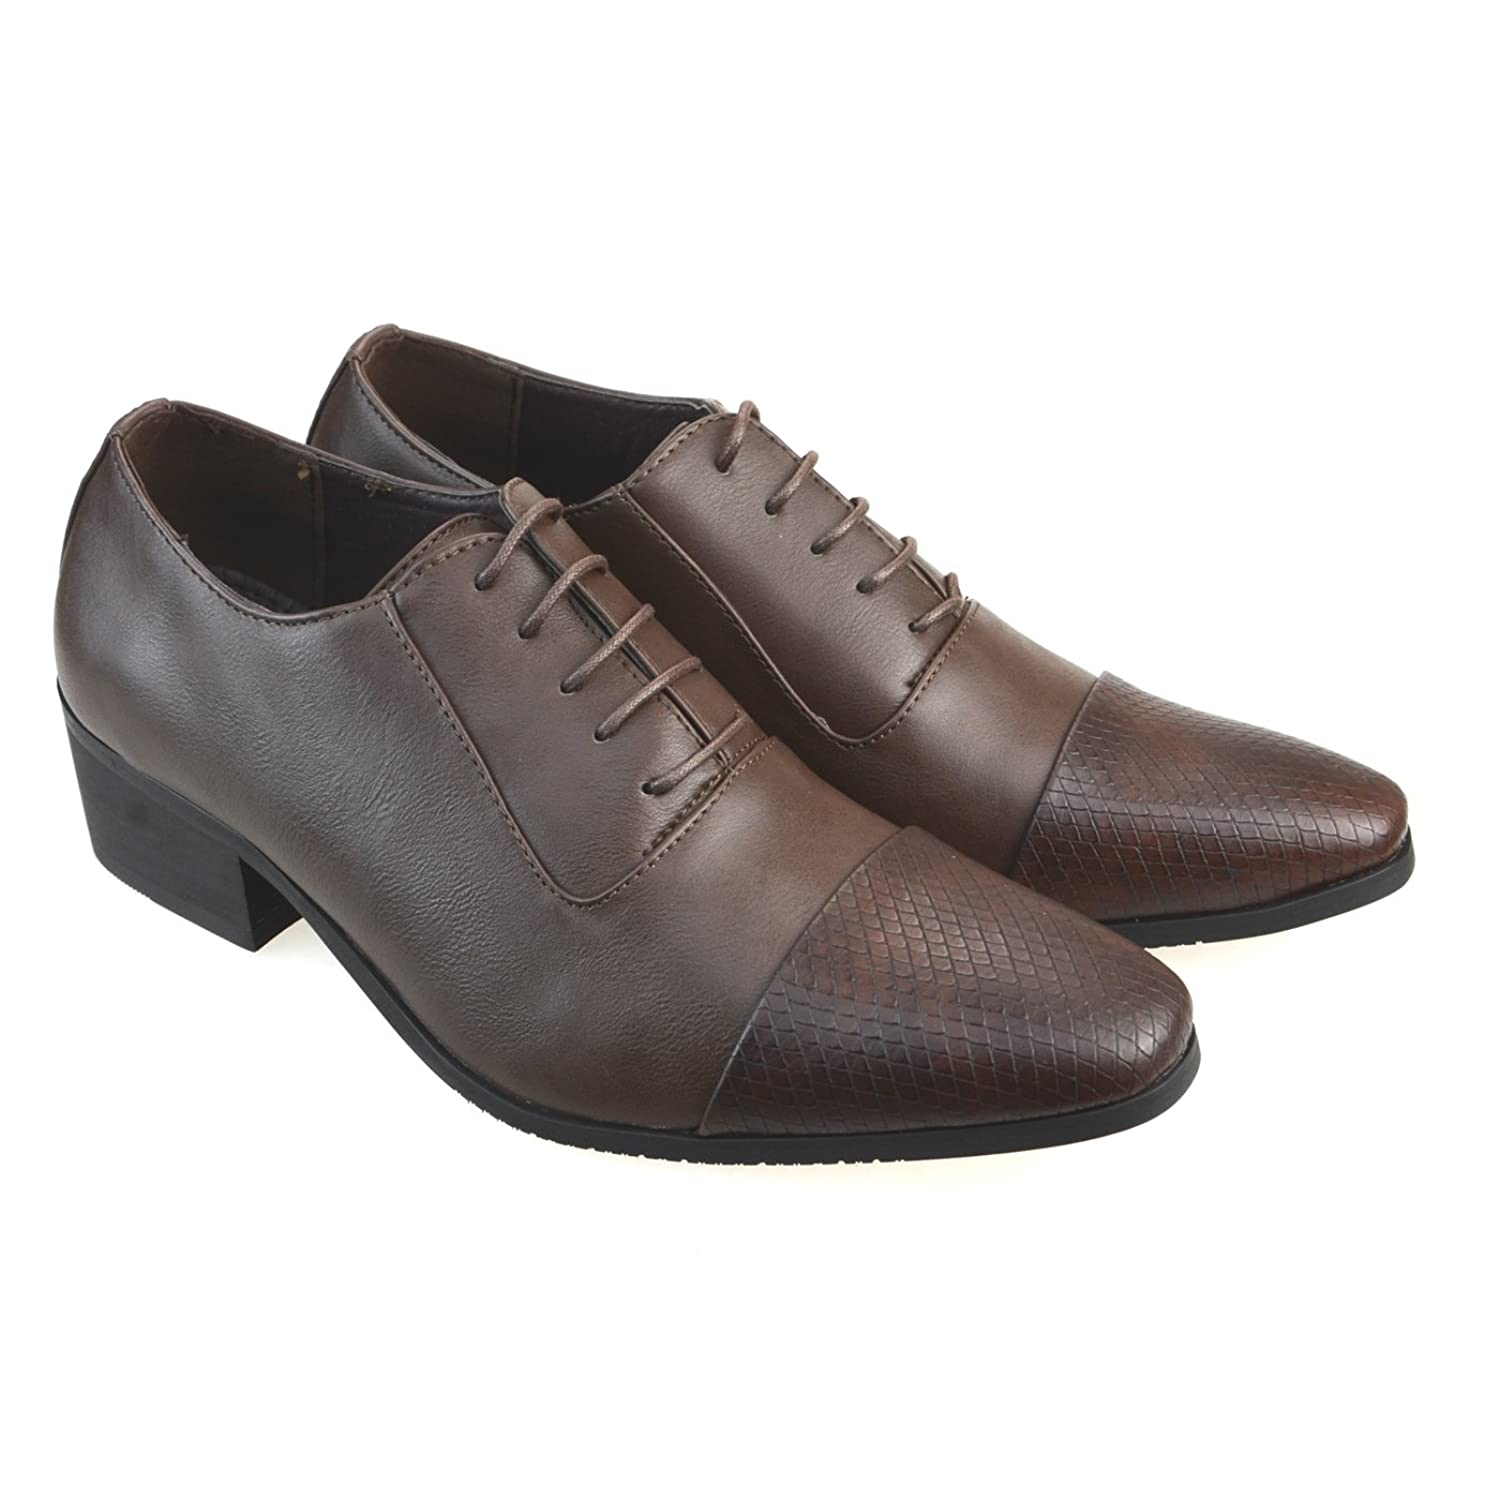 AN Mens Dress Shoes Embossed Cap Toe Two Tone Sytle Lace Up